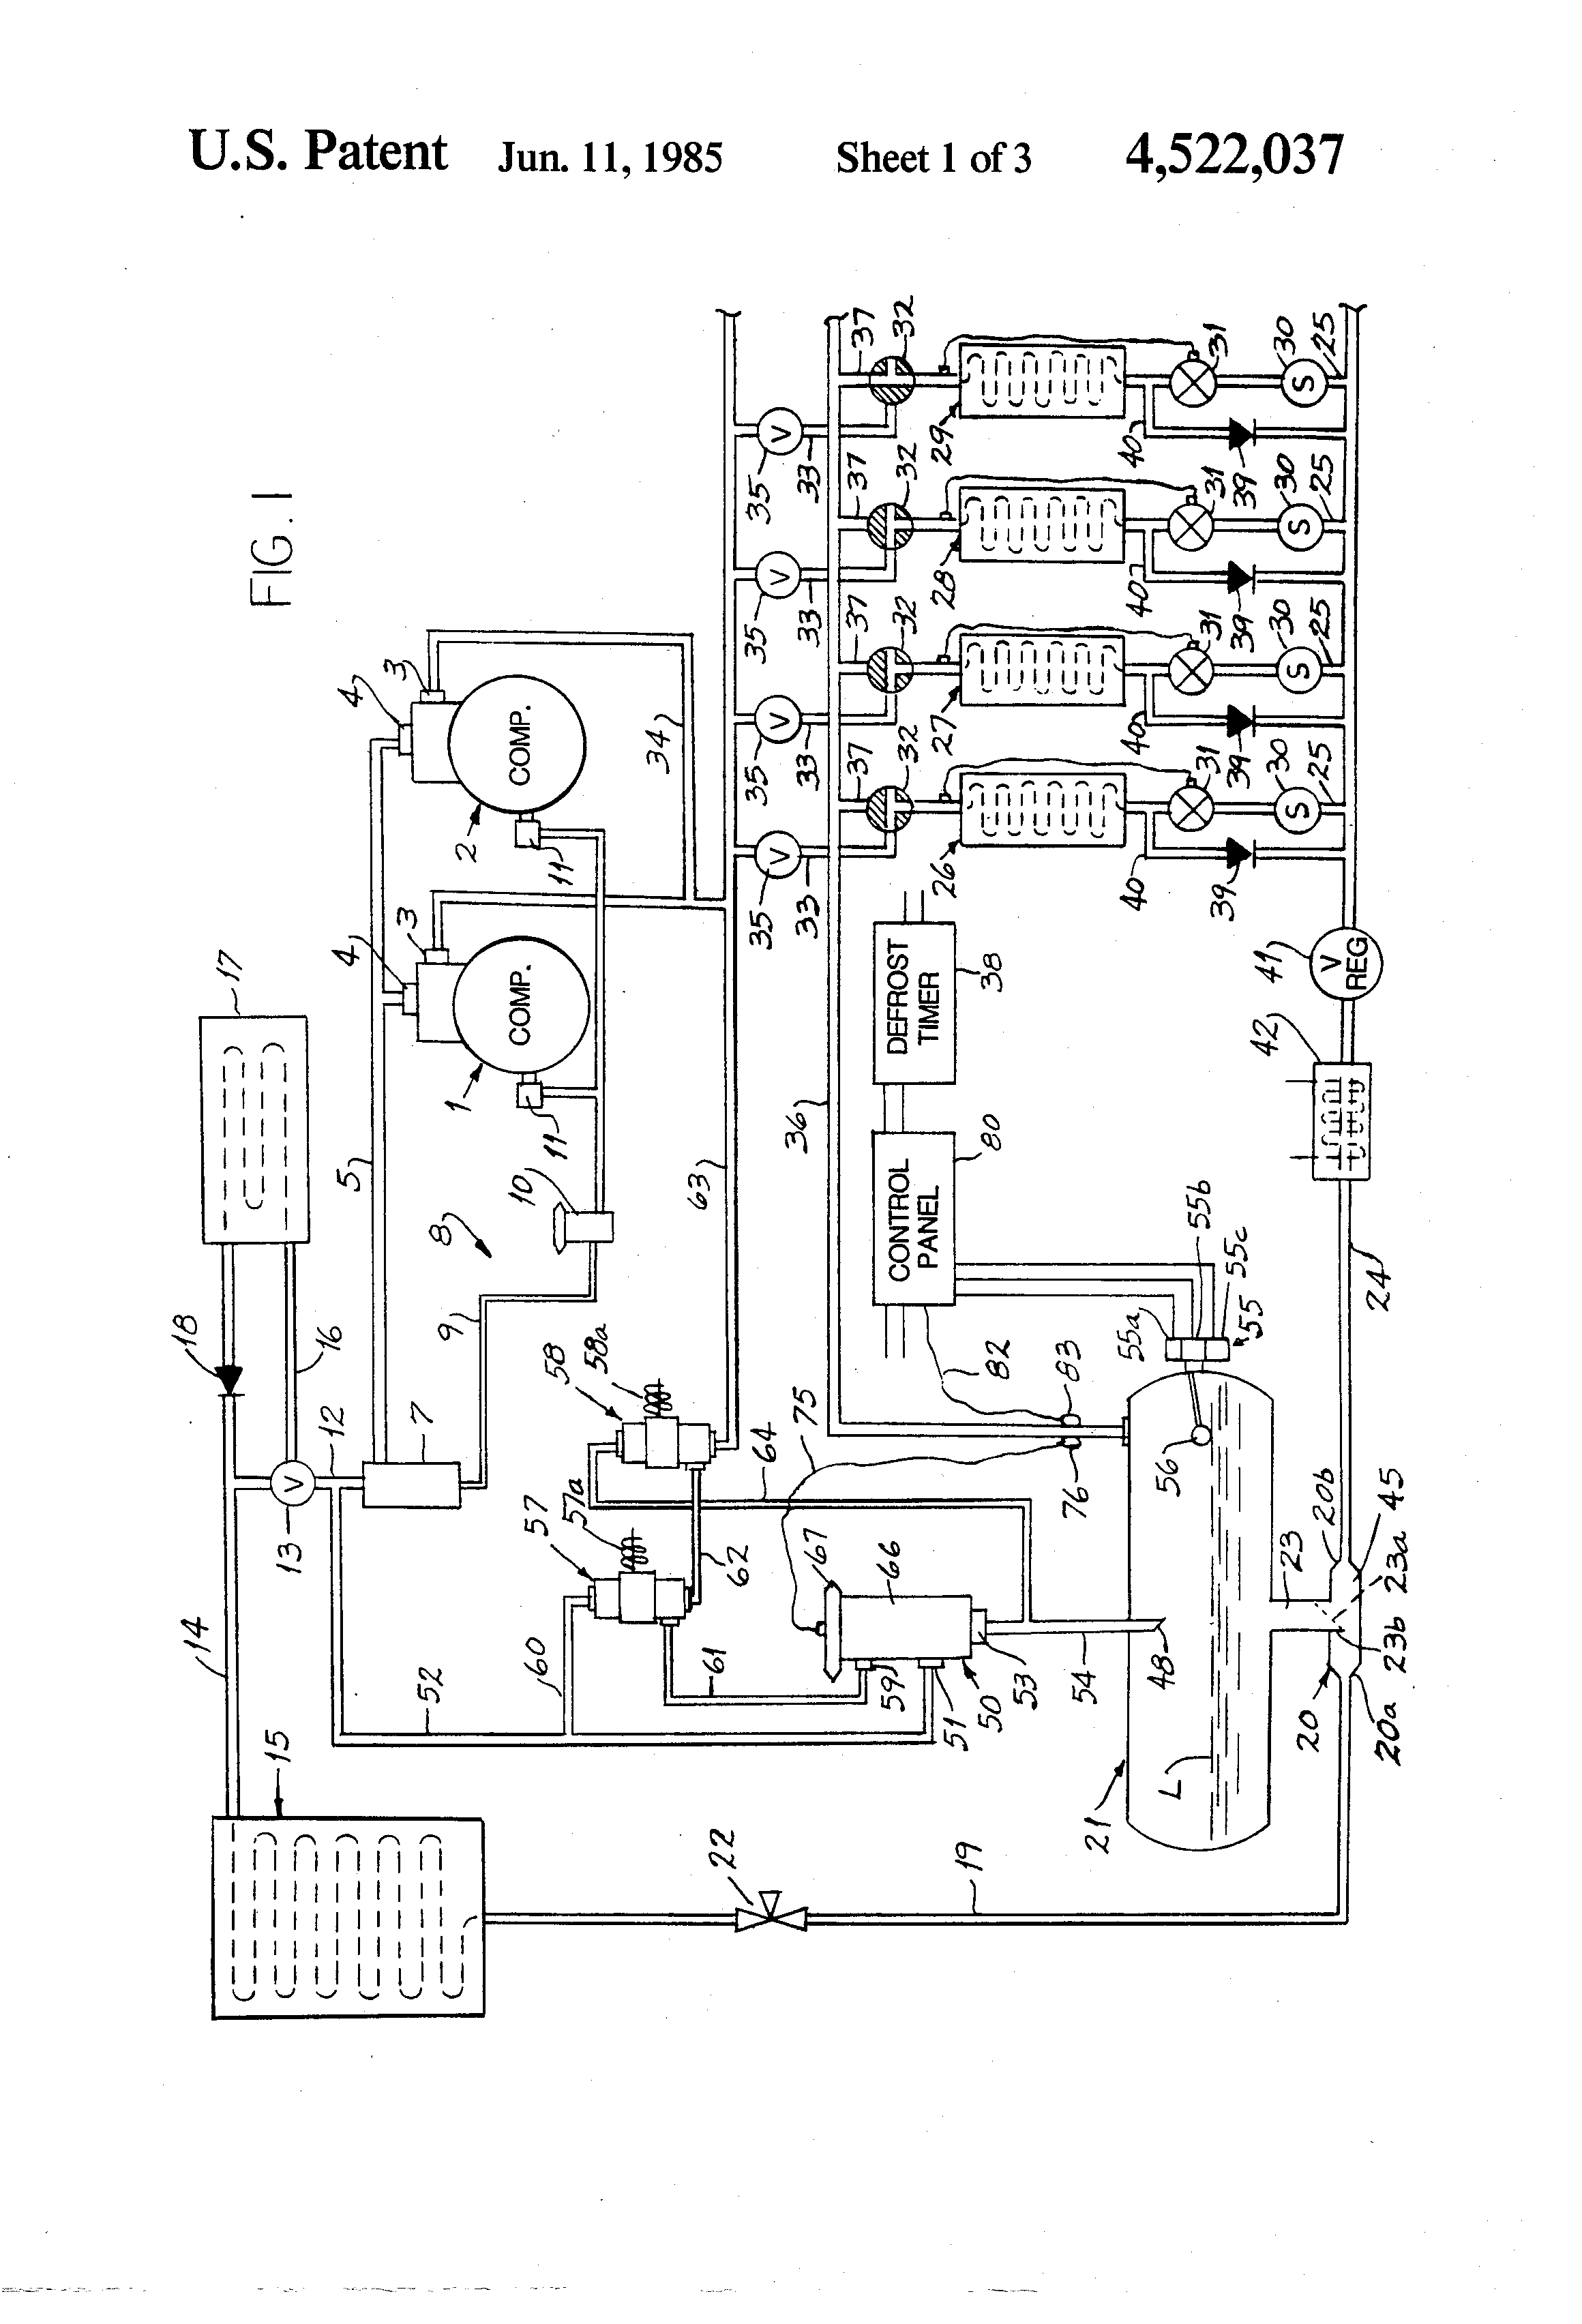 Wiring Diagram For Trautsen Cooler